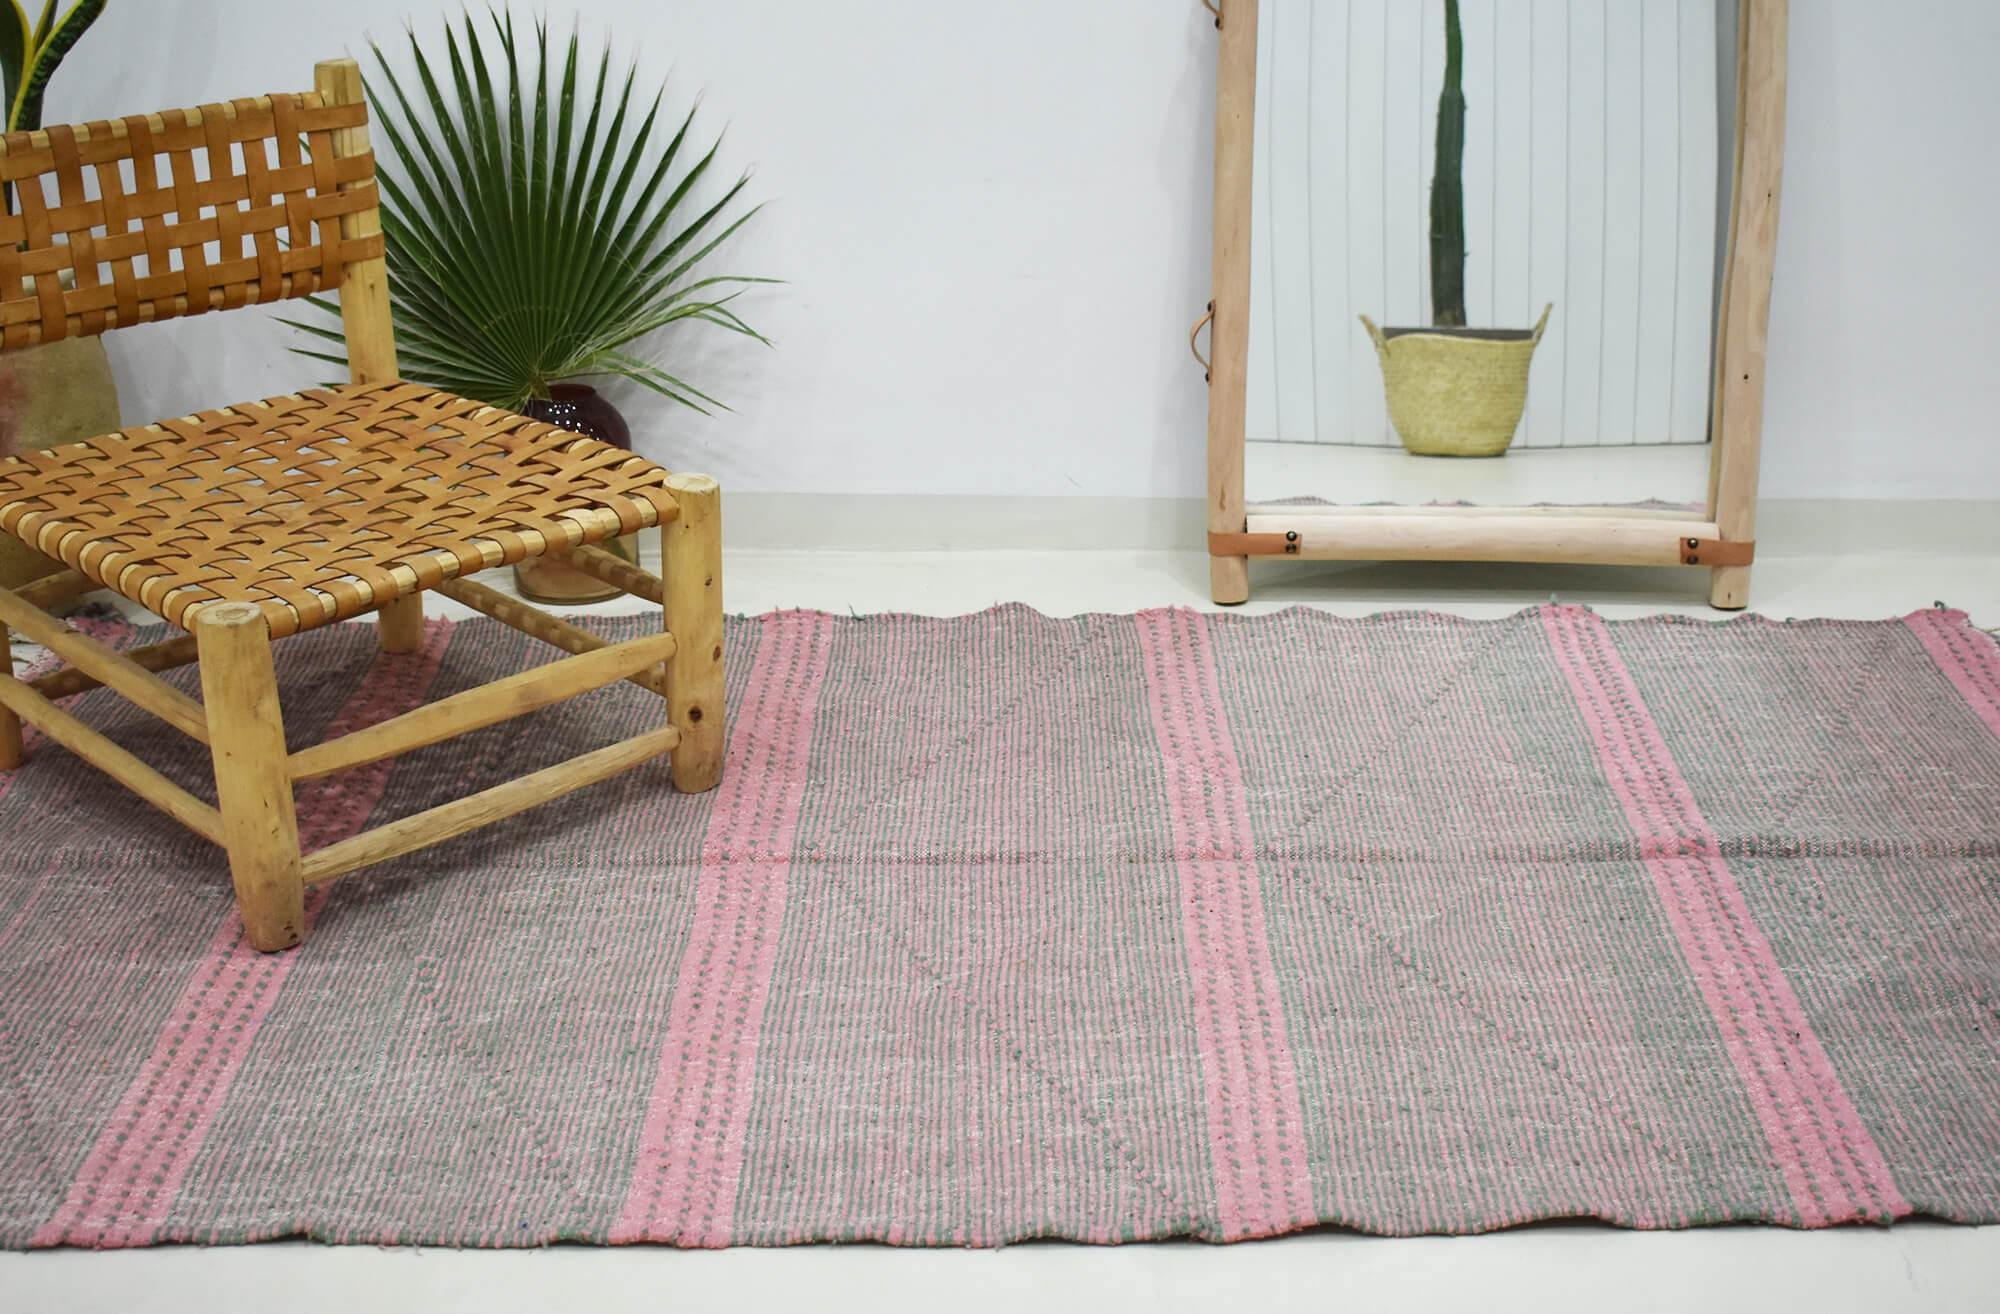 Heather beige, pink and brown kilim rug Bicolour lines